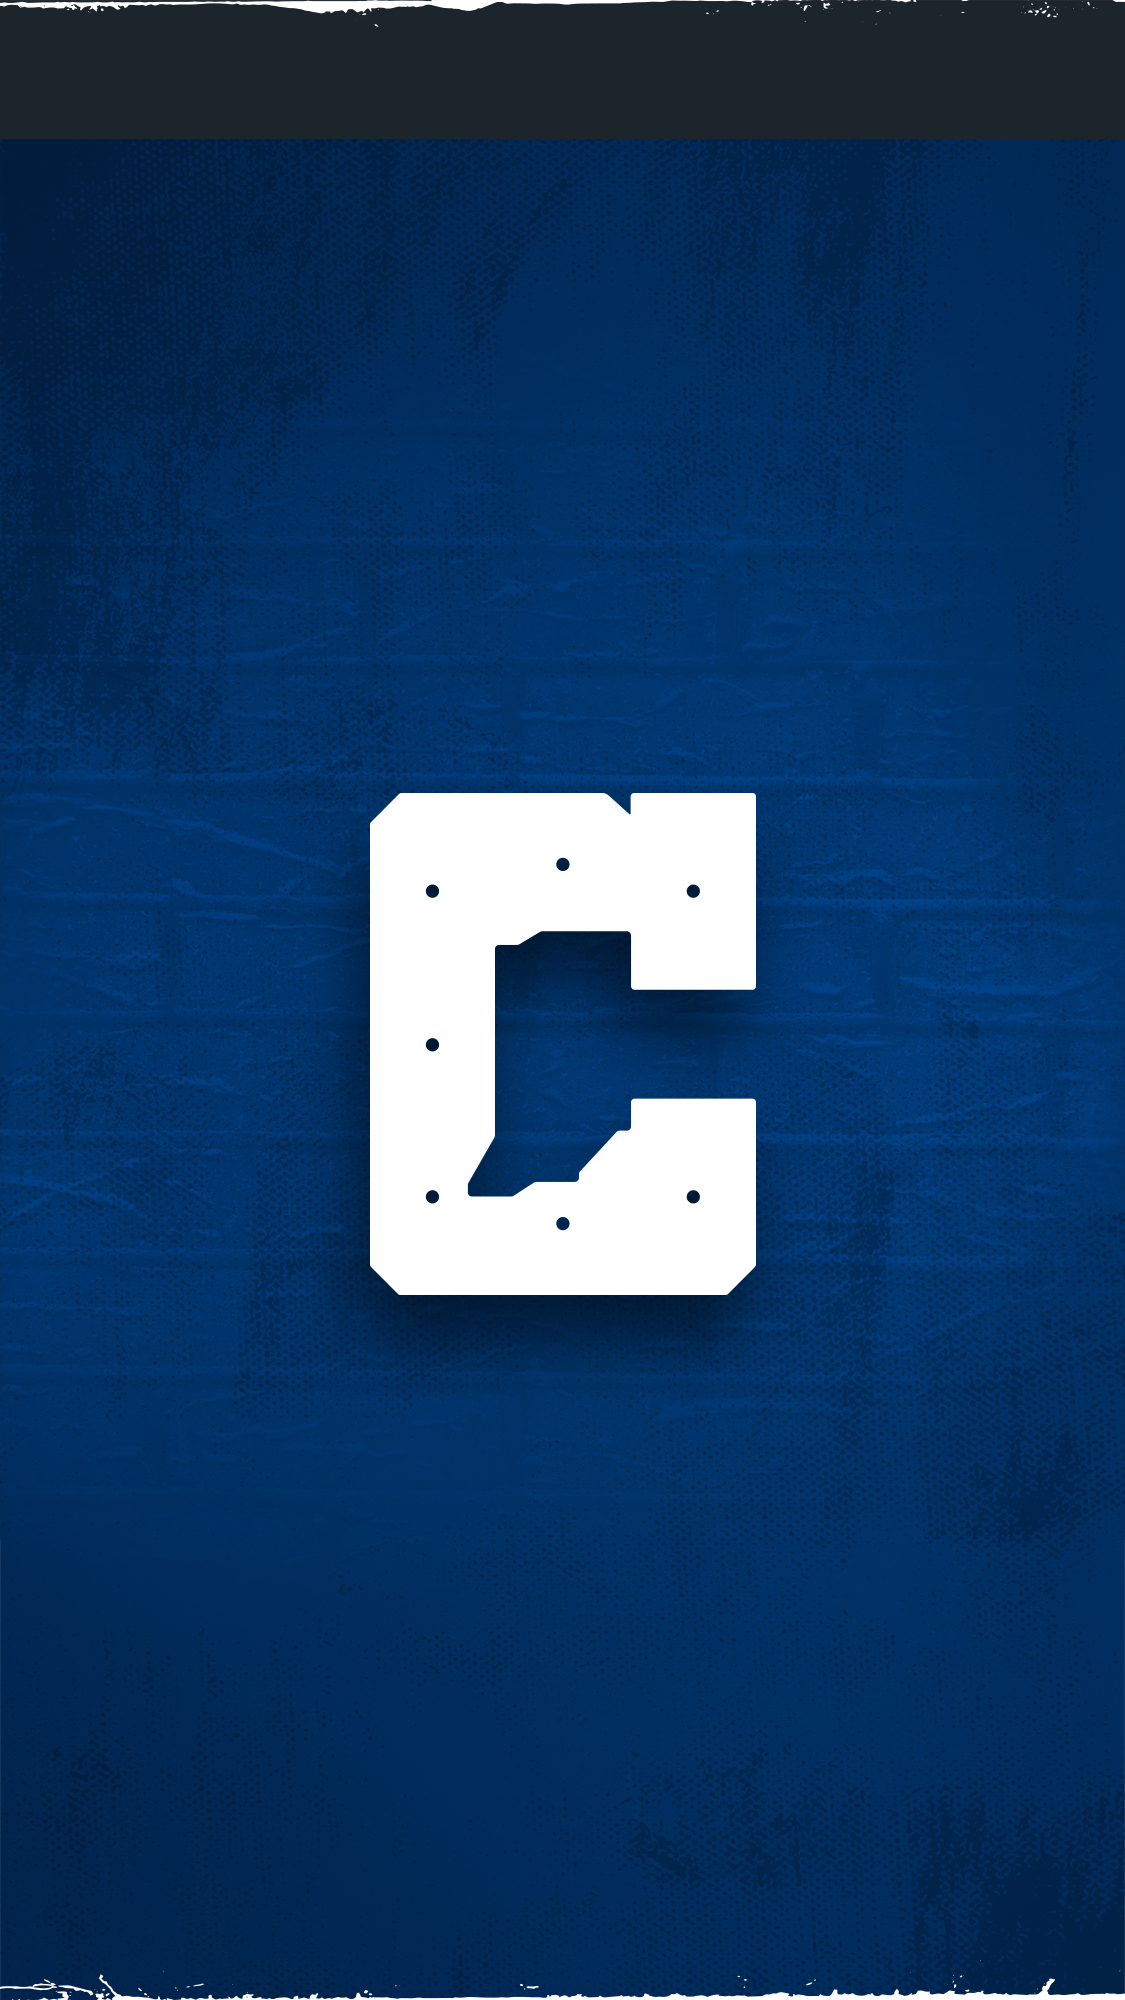 2020_Brand_Update_wallpapers_c_blue_1080x1920